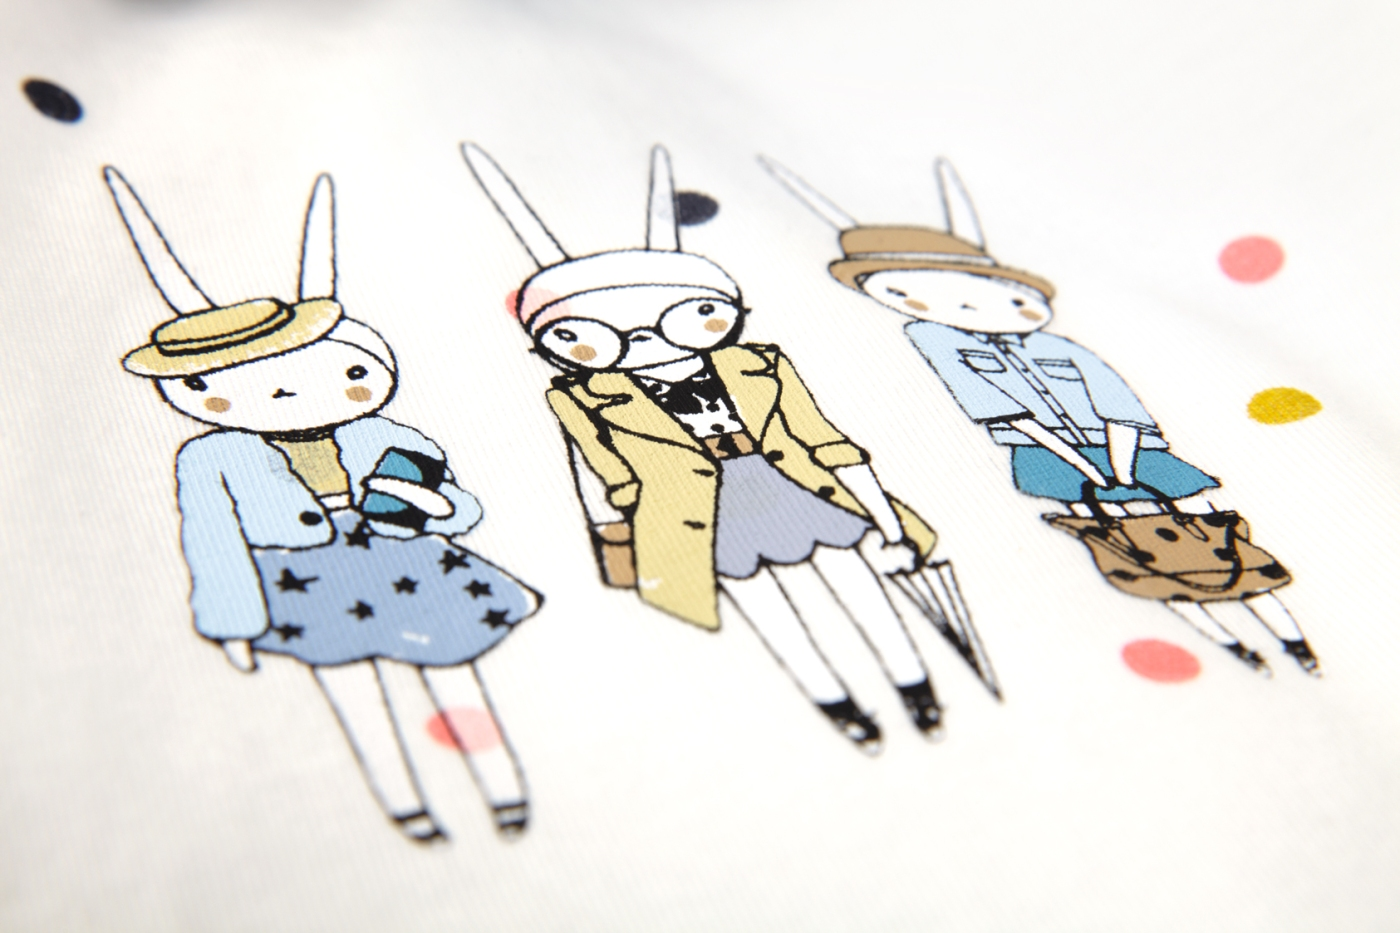 FIFI_LAPIN_TEASER_1_STYLED